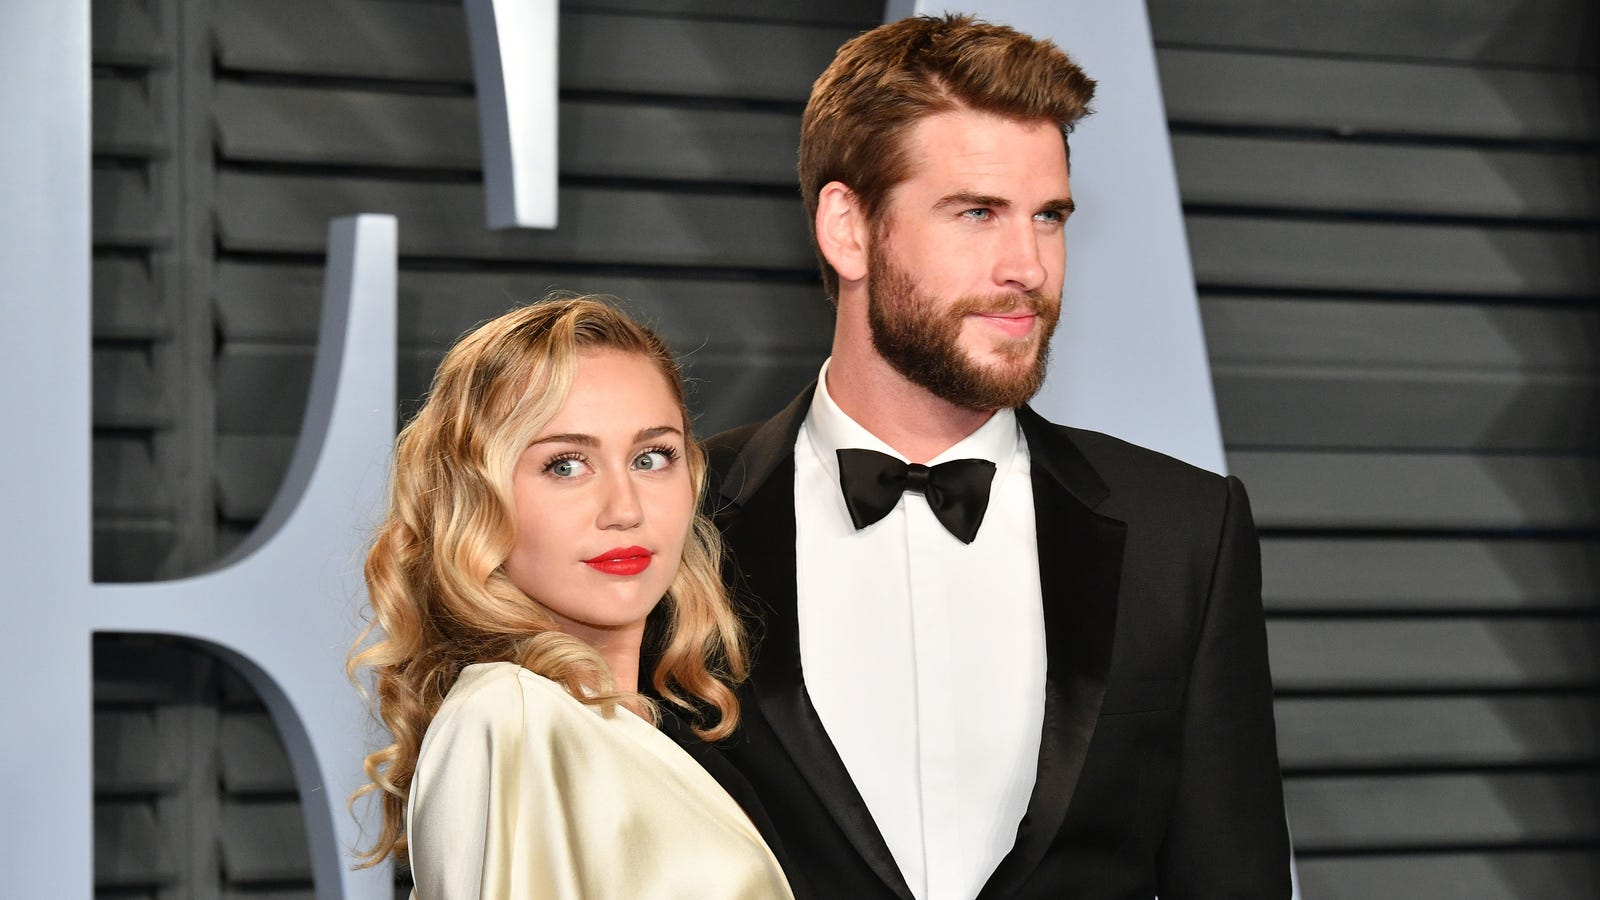 Miley Cyrus and Liam Hemsworth Are Pregnant With a Baby Girl